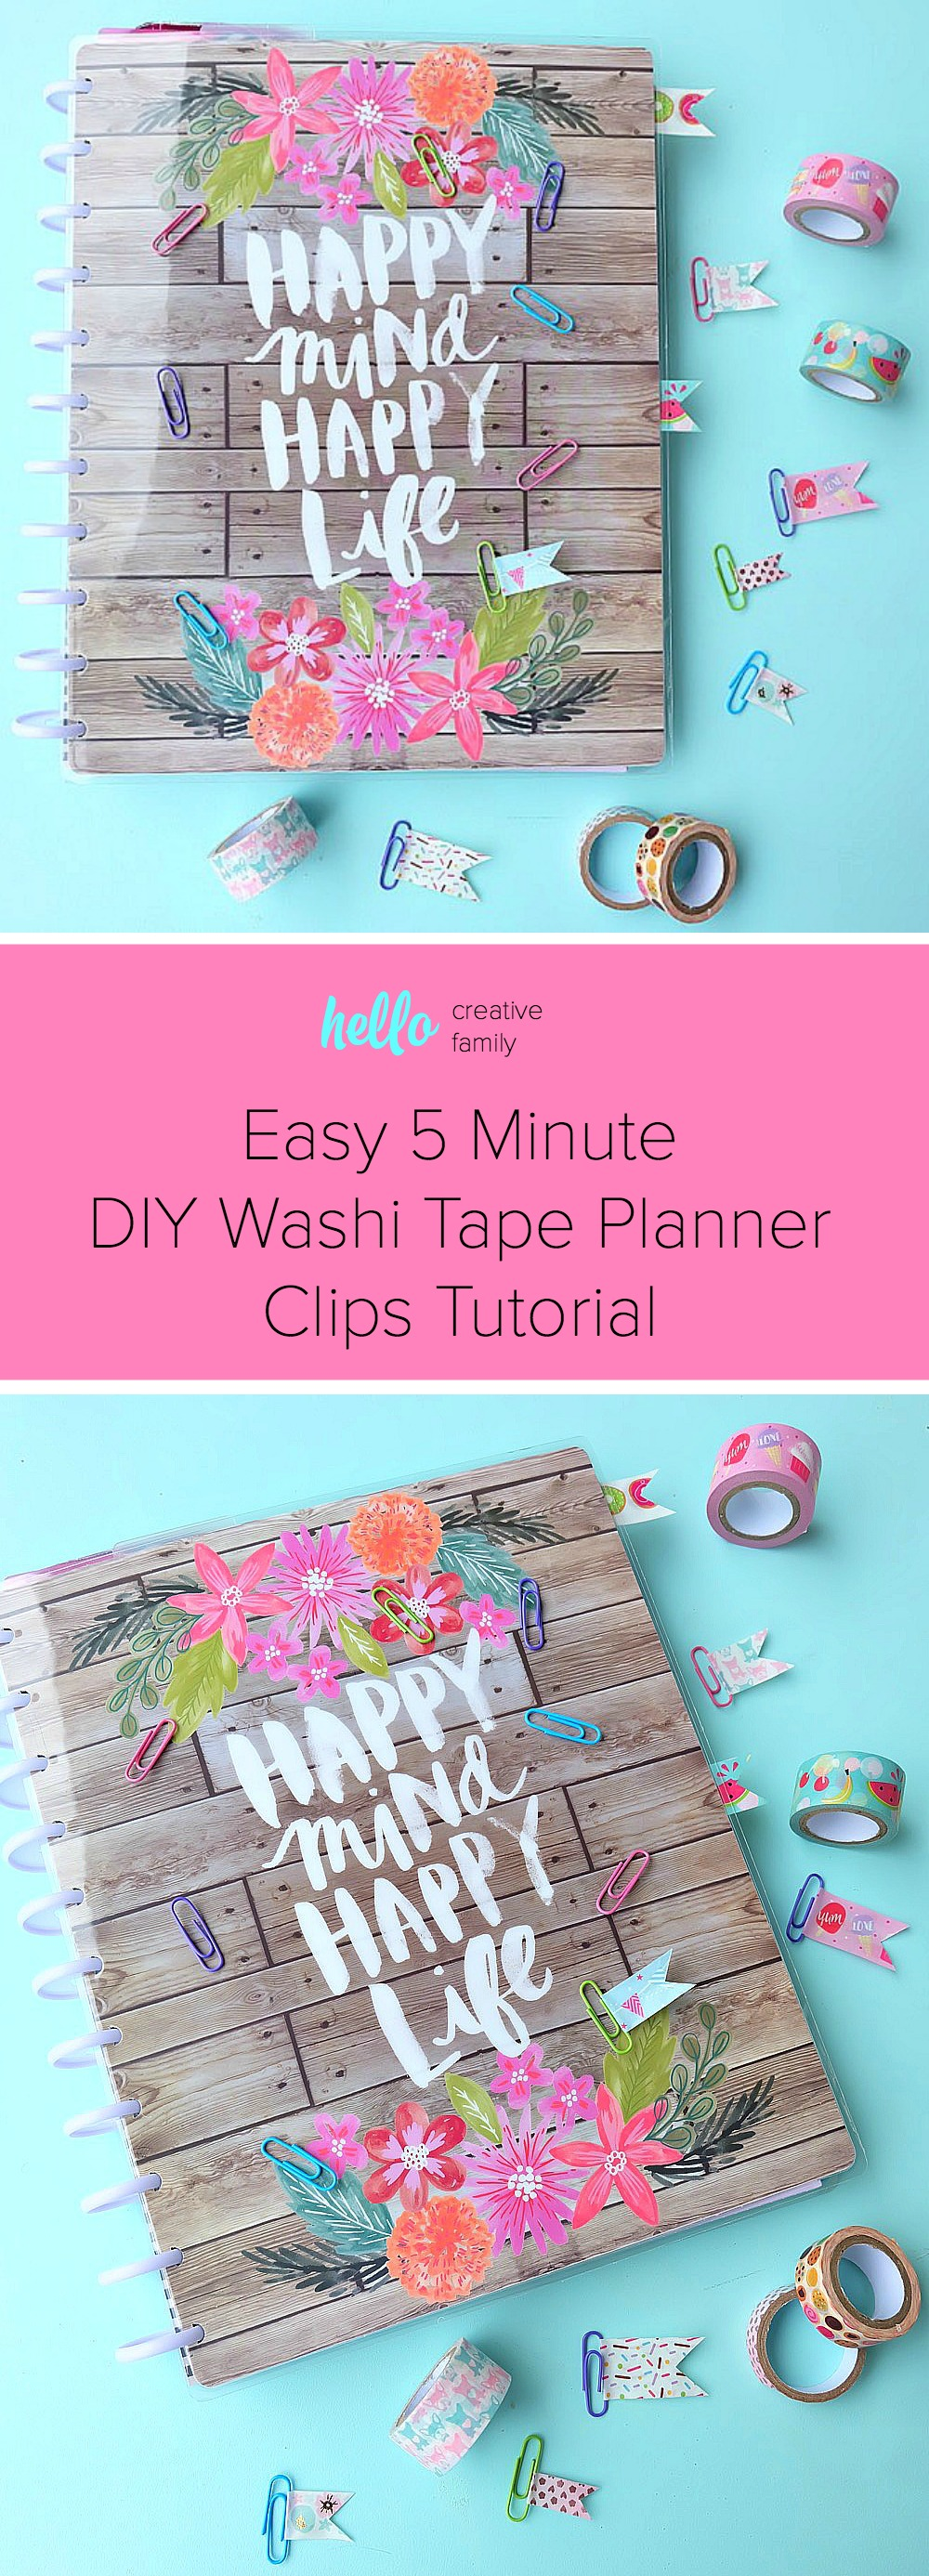 Planner addicts unite with this adorable and easy 5 minute DIY Washi Tape Planner Clips Tutorial. Turn paper clips and washi tape into adorable bookmarks to decorate your Happy Planner or bullet journal. You will love this fun DIY planner accessories craft project with simple step by step photos! #happyplanner #washitape #crafts #DIY